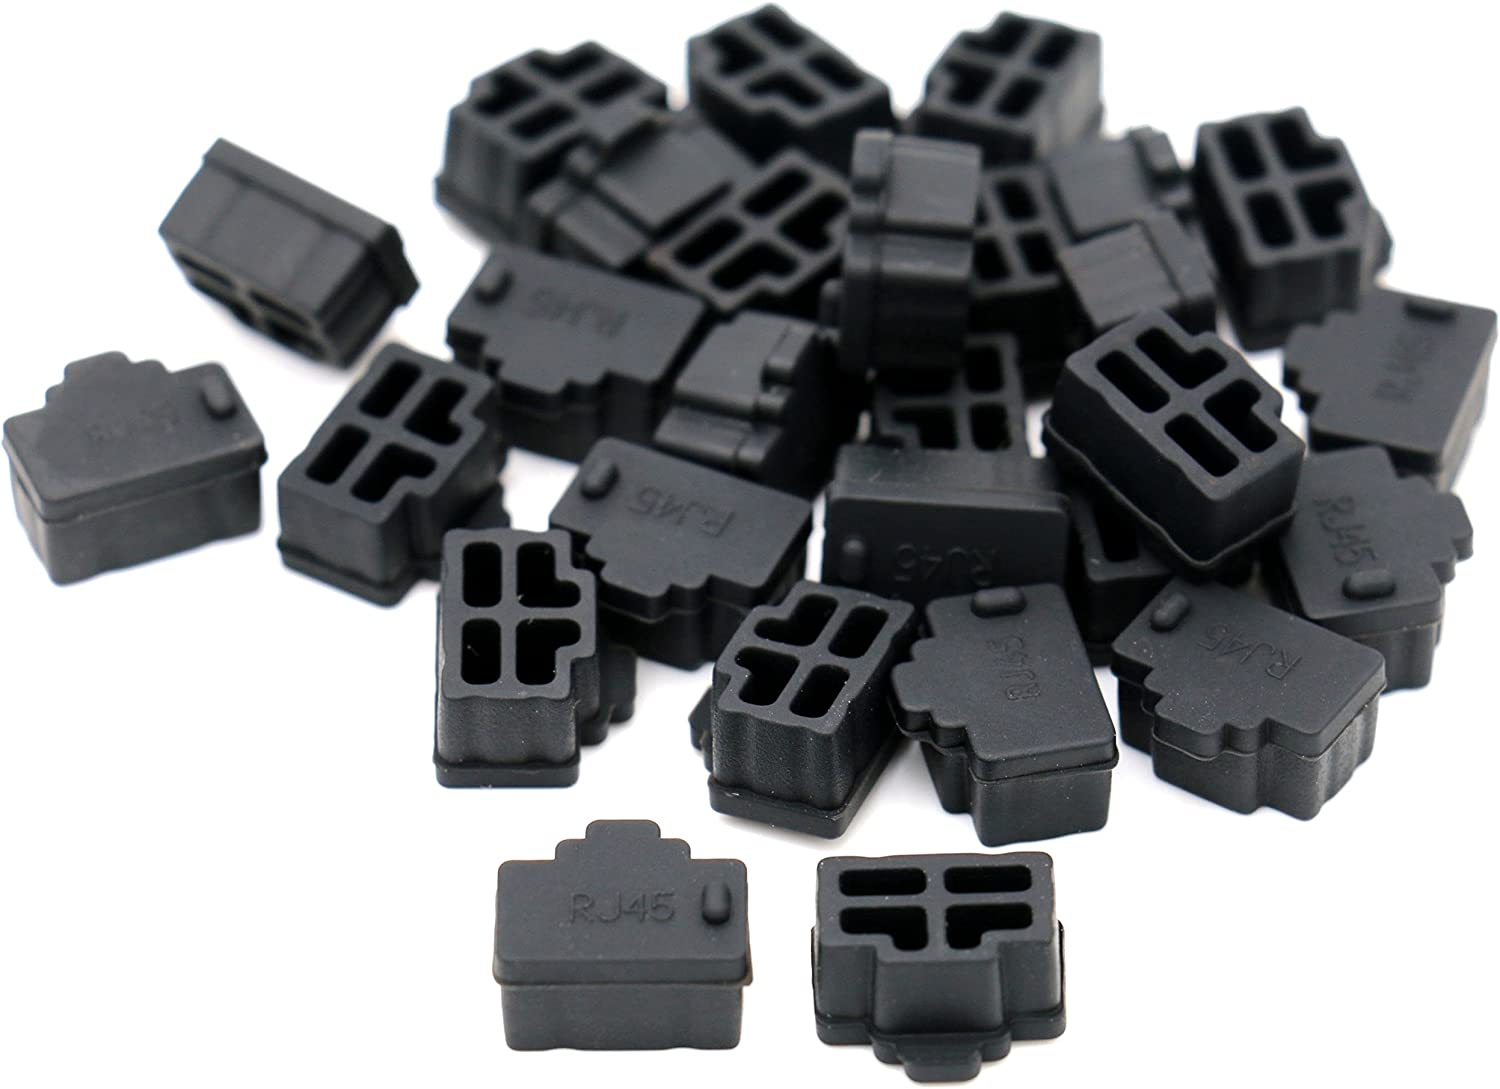 50 PCS Black RJ45 Port Jack Dust Protective cover Caps Port Cover and Protector